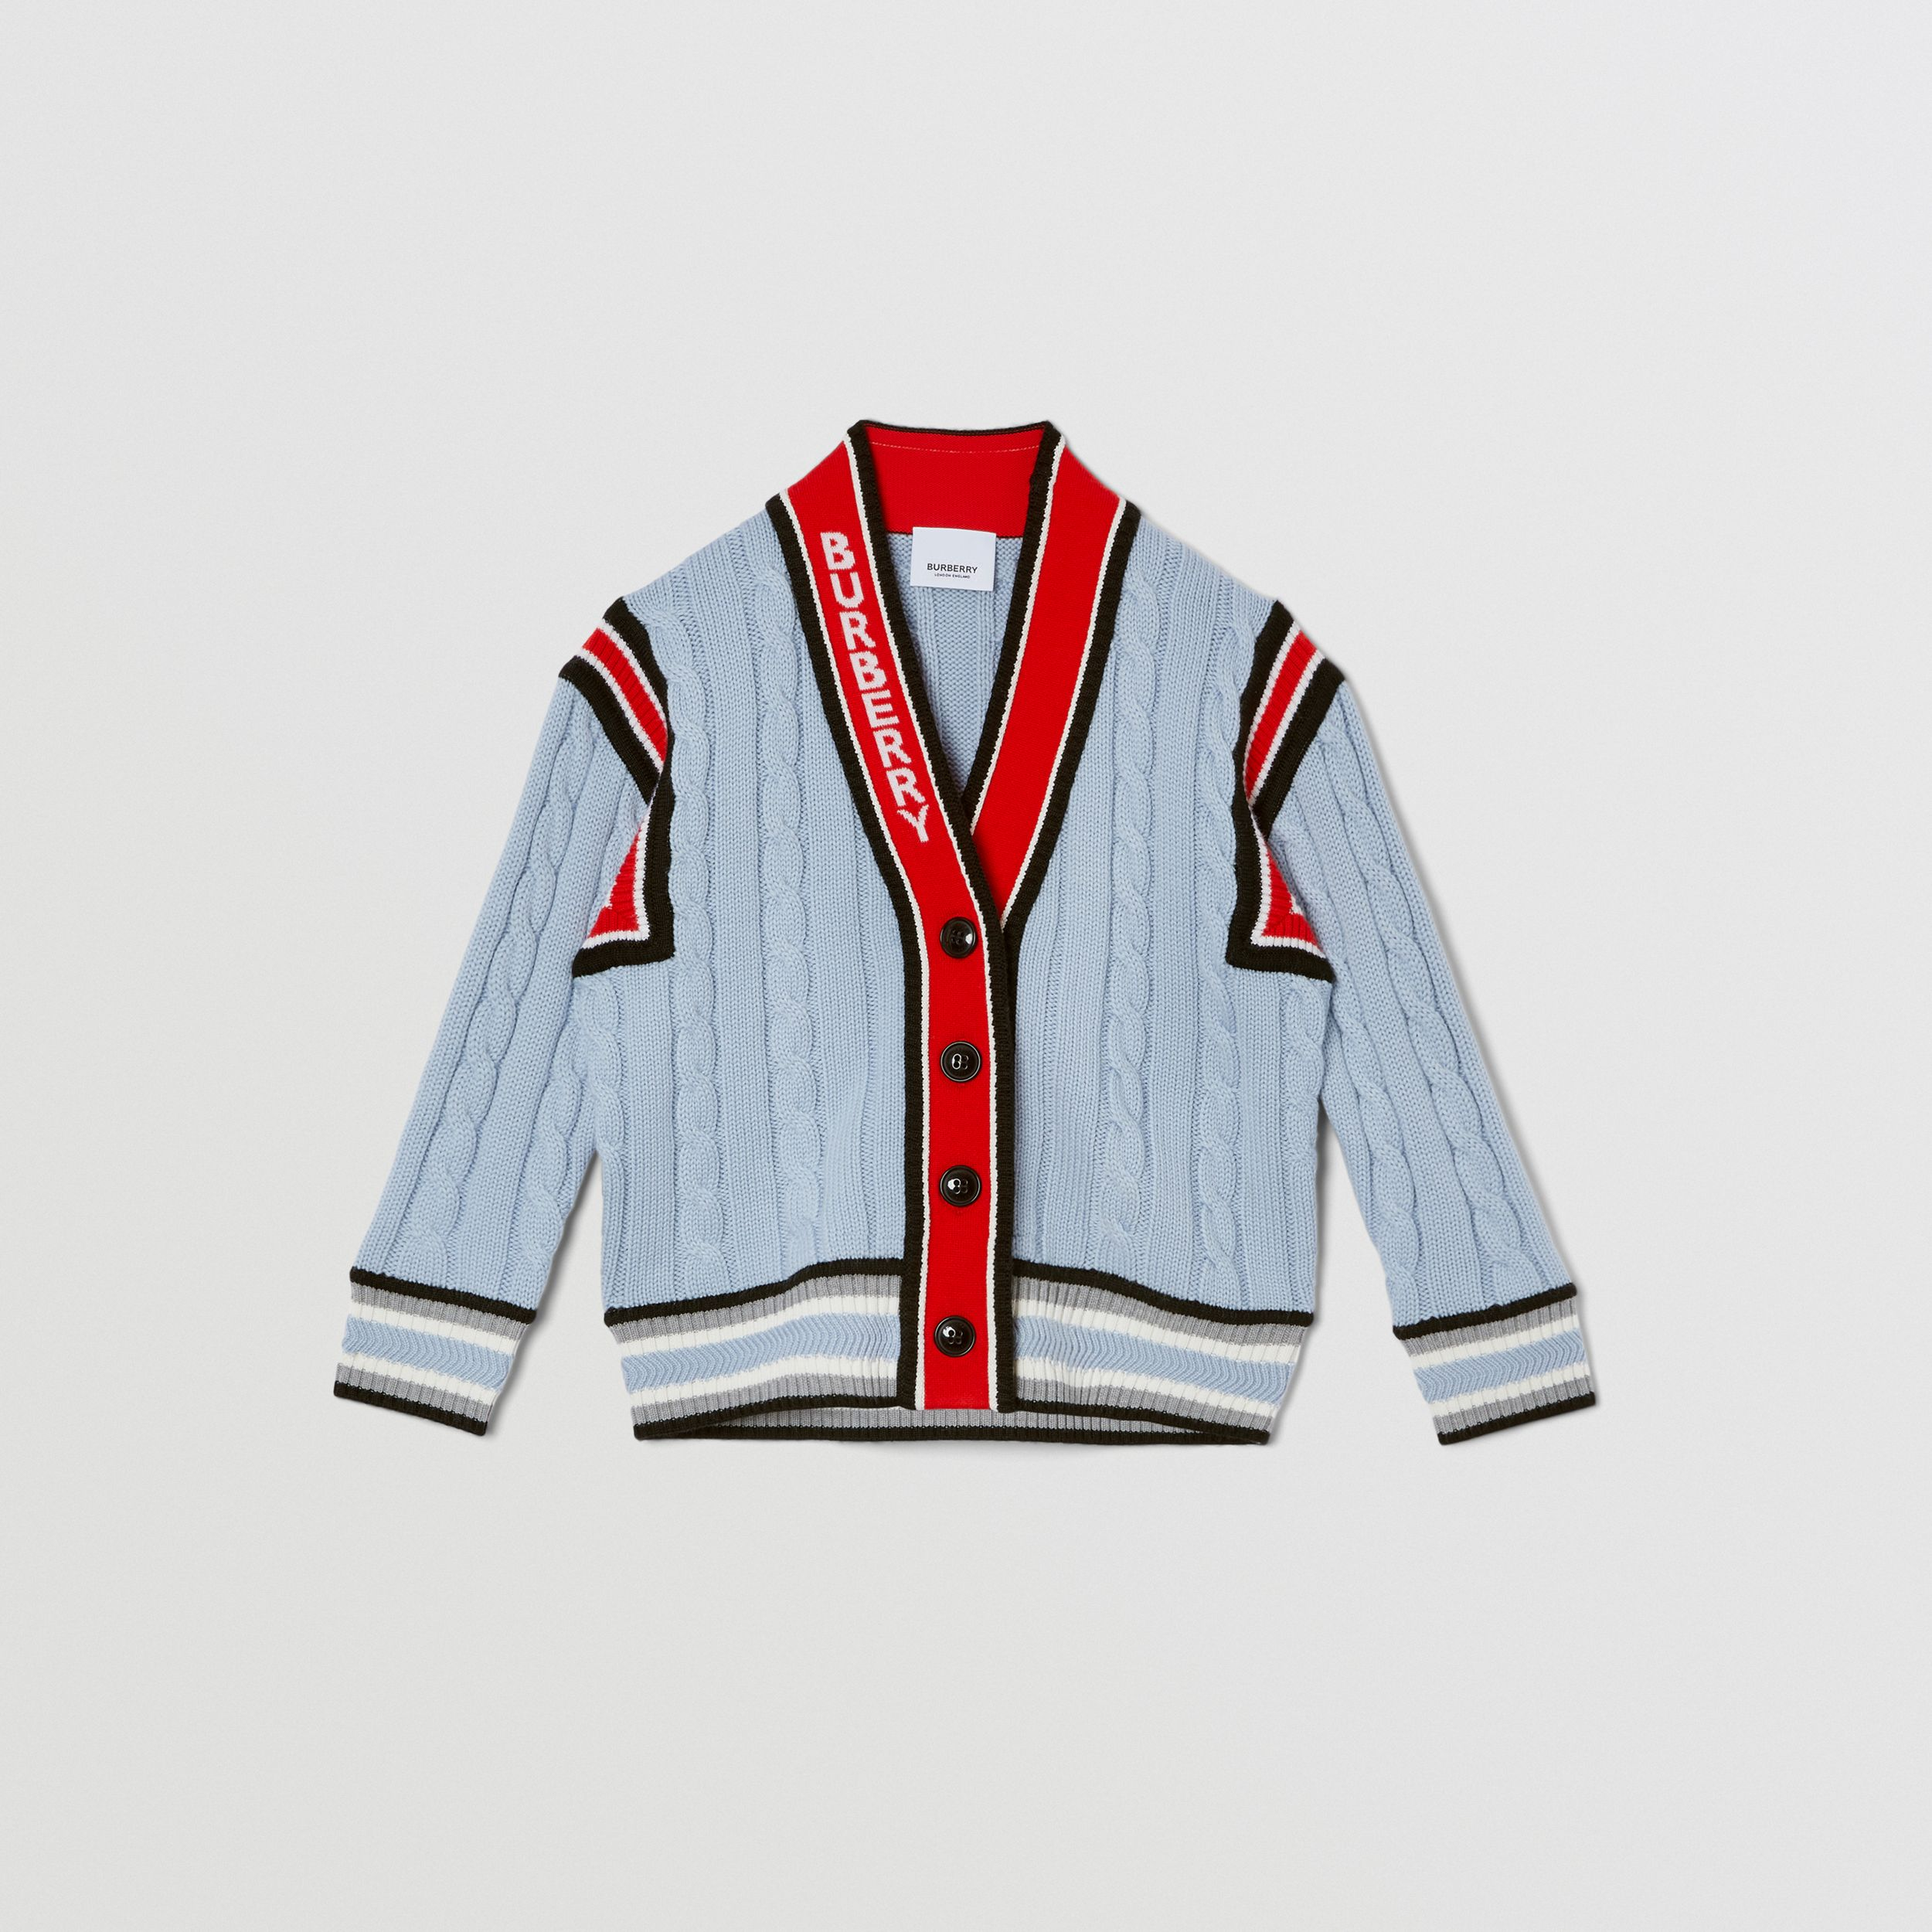 Logo Jacquard Cable Knit Merino Wool Cardigan in Light Blue | Burberry - 1